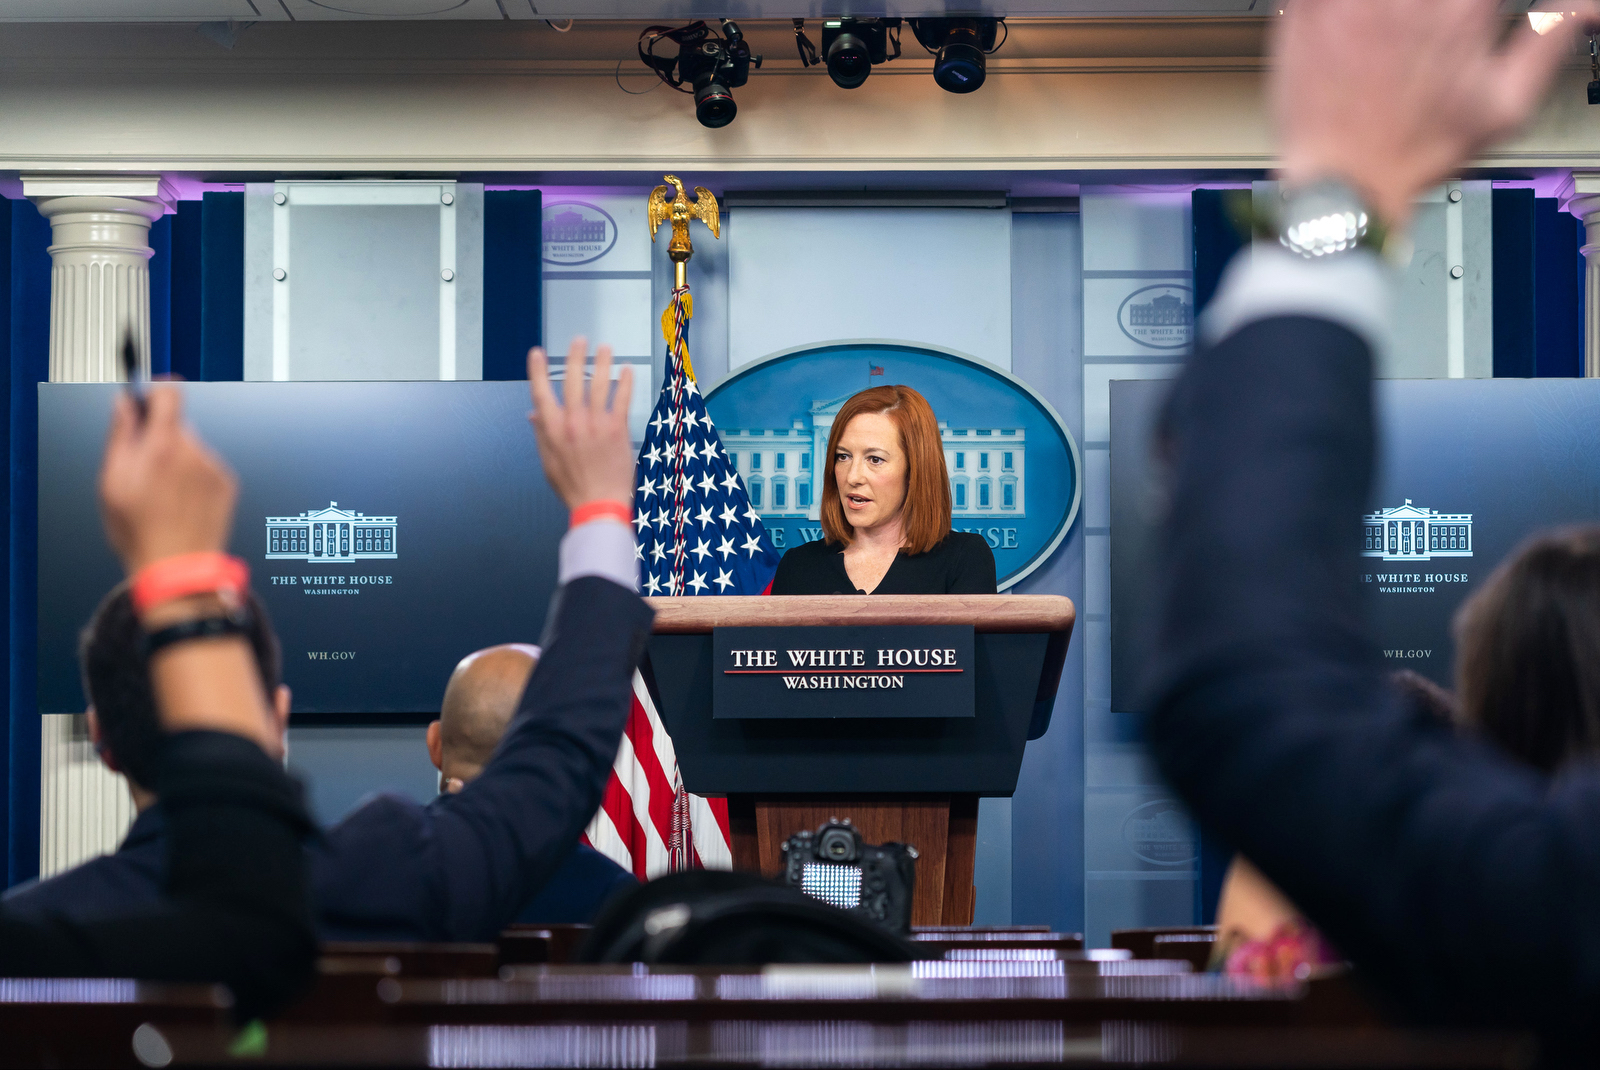 White House Press Secretary Jenn Psaki takes questions while standing at the White House press secretary's podium, journalists' arms raised in front of her